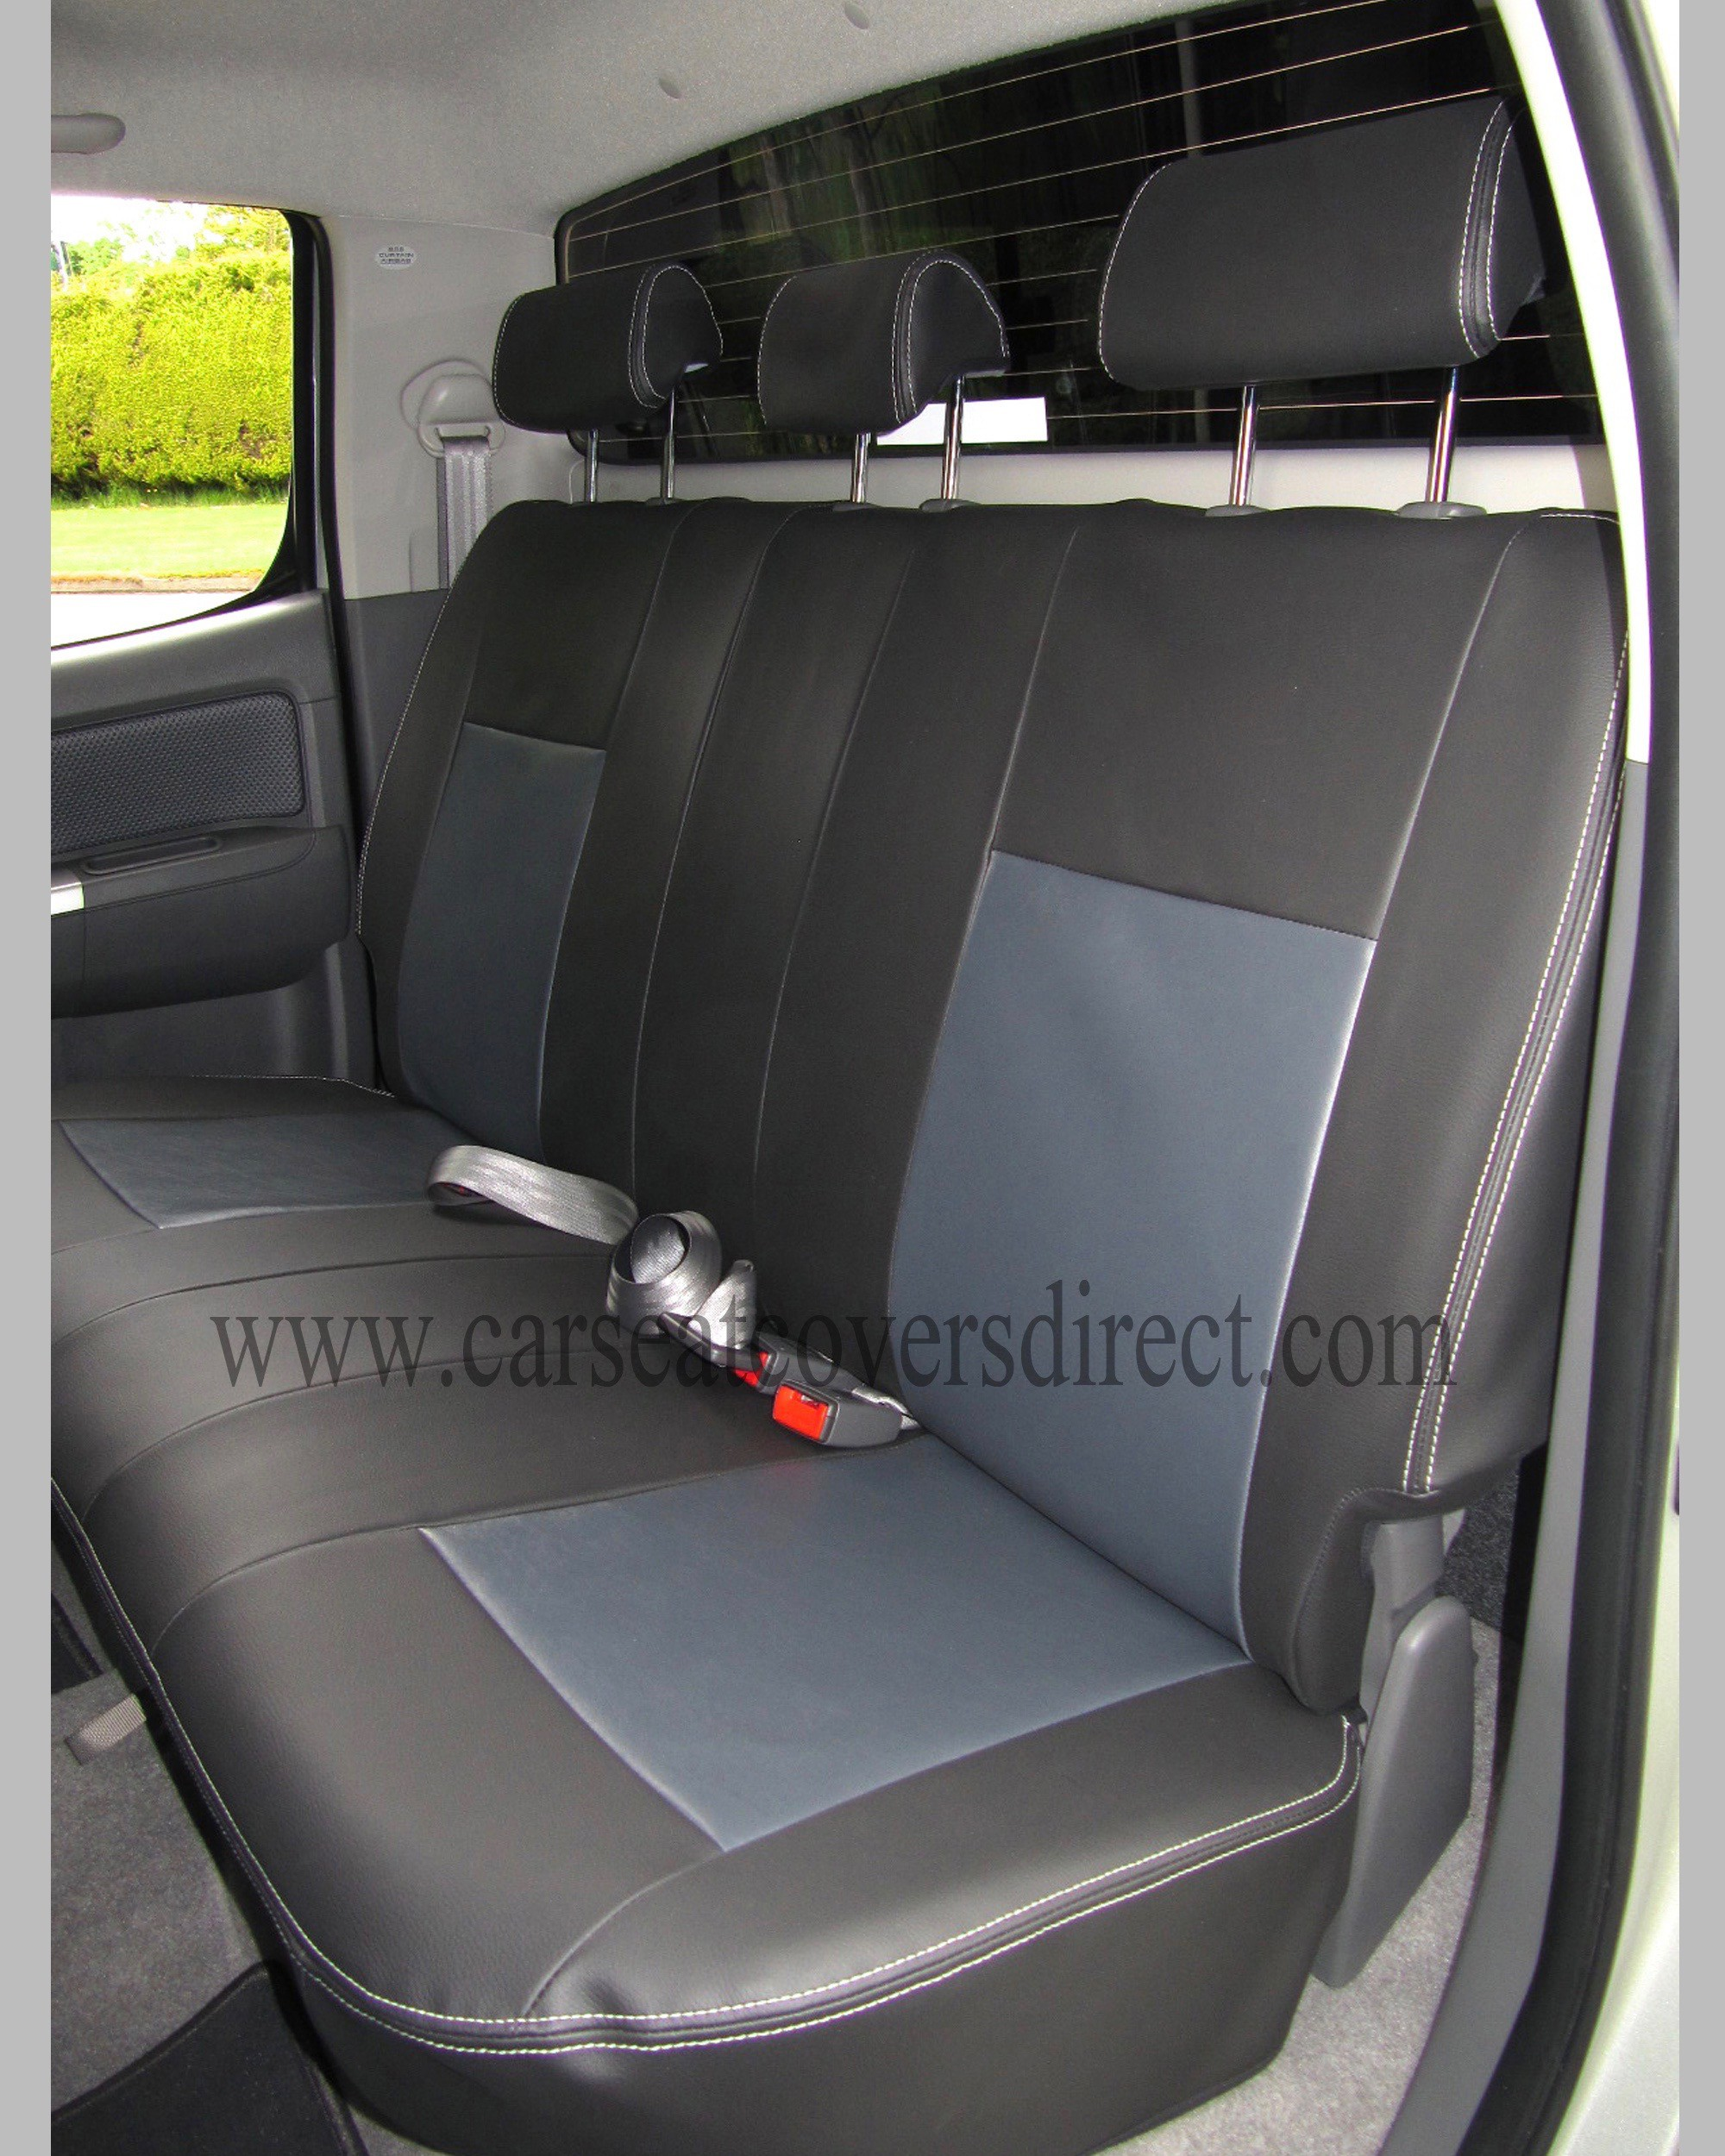 Toyota hilux invincible seat covers more images click to view